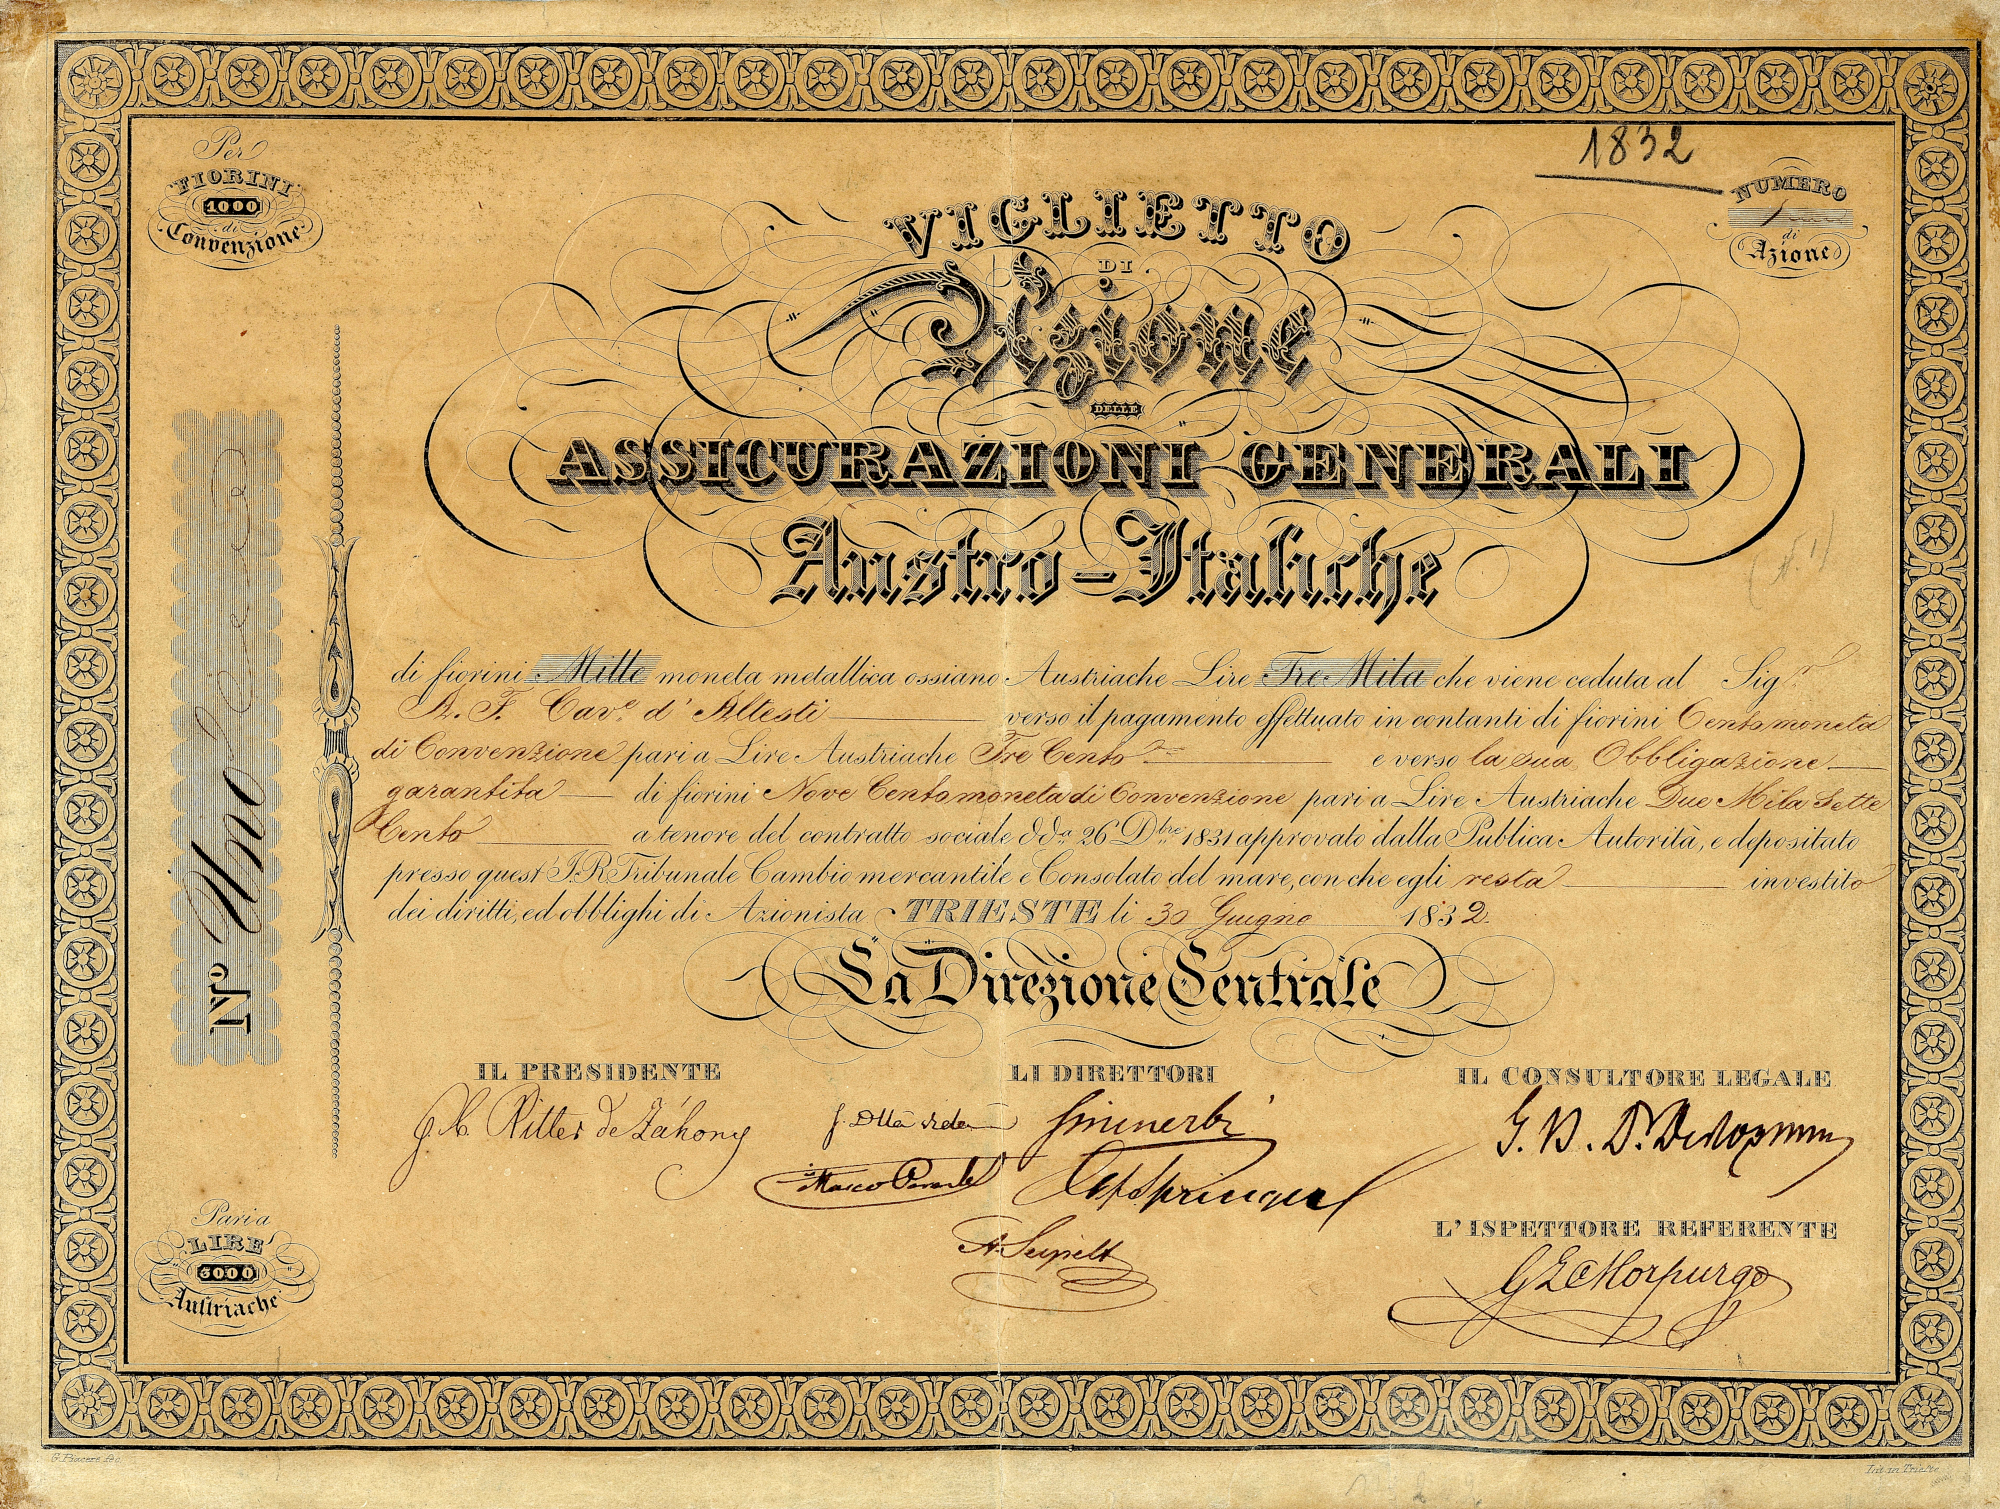 Share Certificate No. 1 (1832)